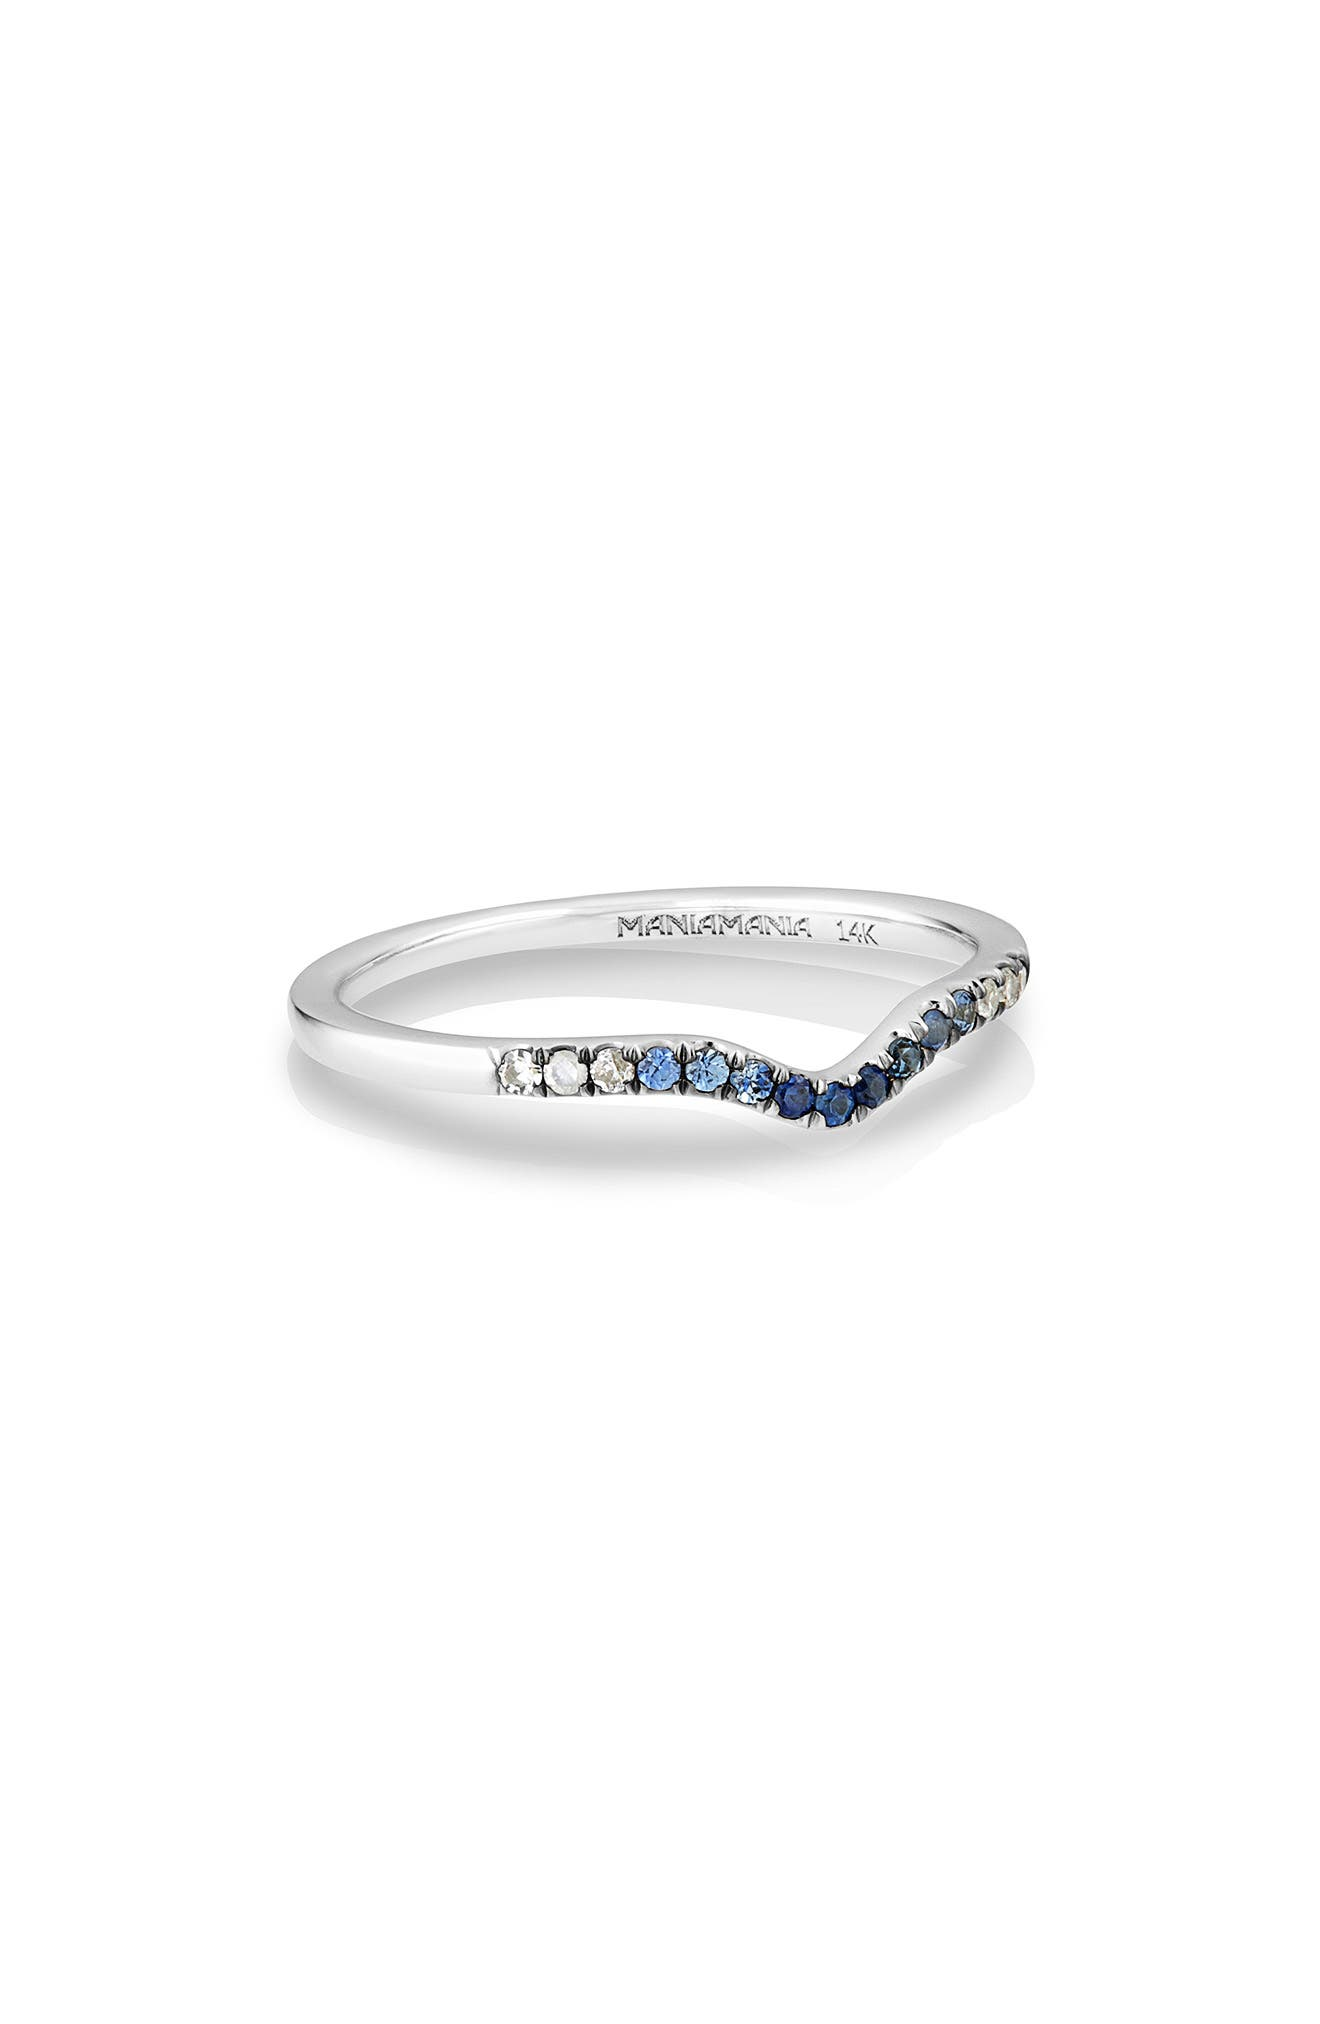 MANIAMANIA Unity Gradient Sapphire Band Ring, Main, color, BLUE SAPPHIRE/ WHITE GOLD